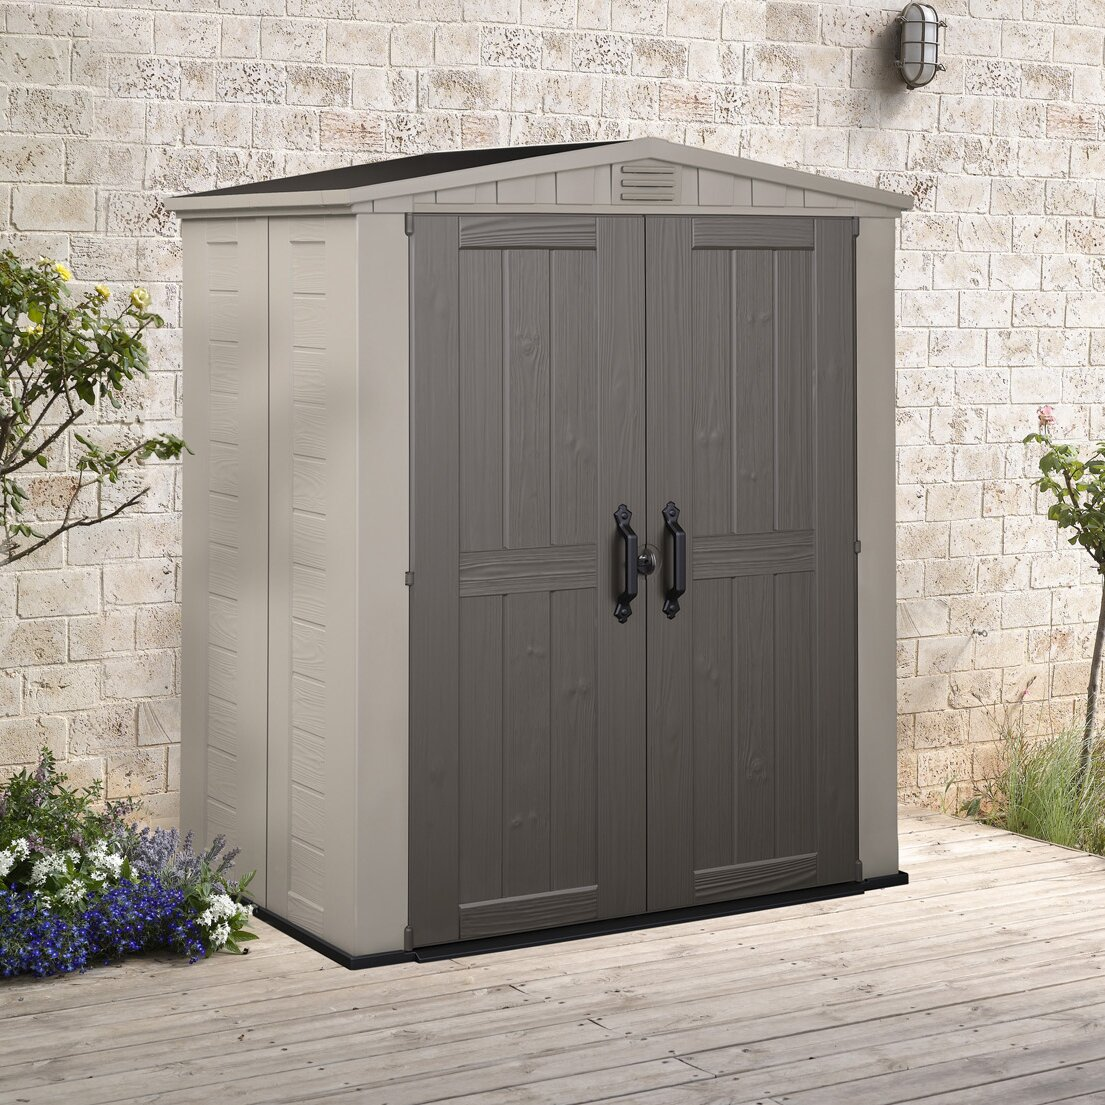 Keter Factor 6 Ft W X 3 Ft D Resin Storage Shed